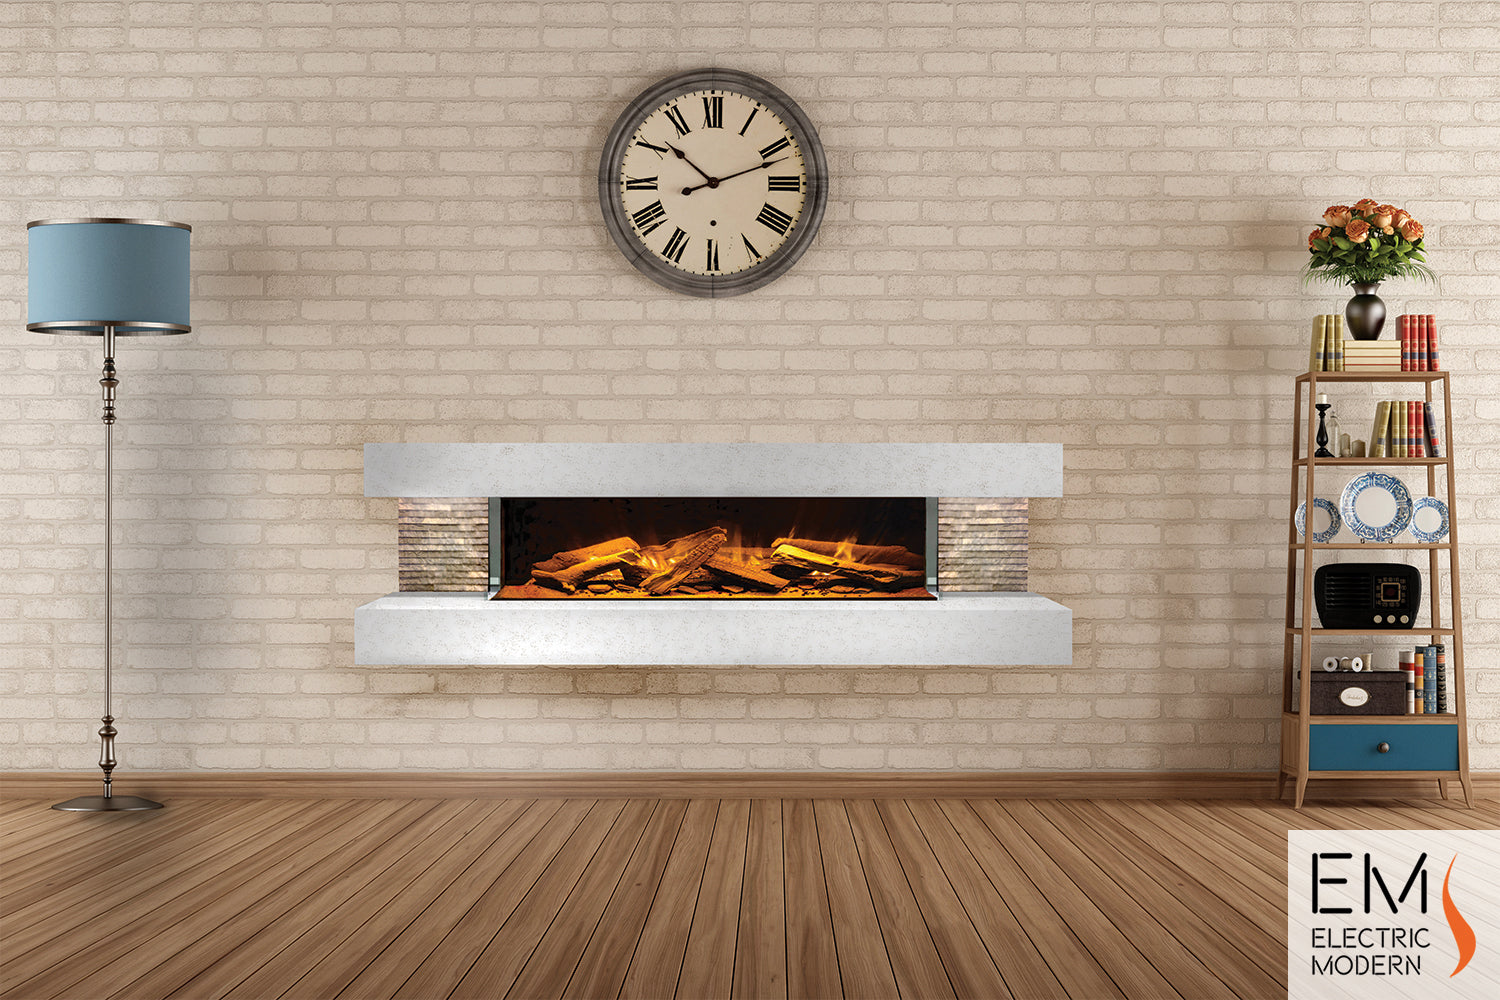 Compton 1000: Electric Fireplace Suite (White Stone)